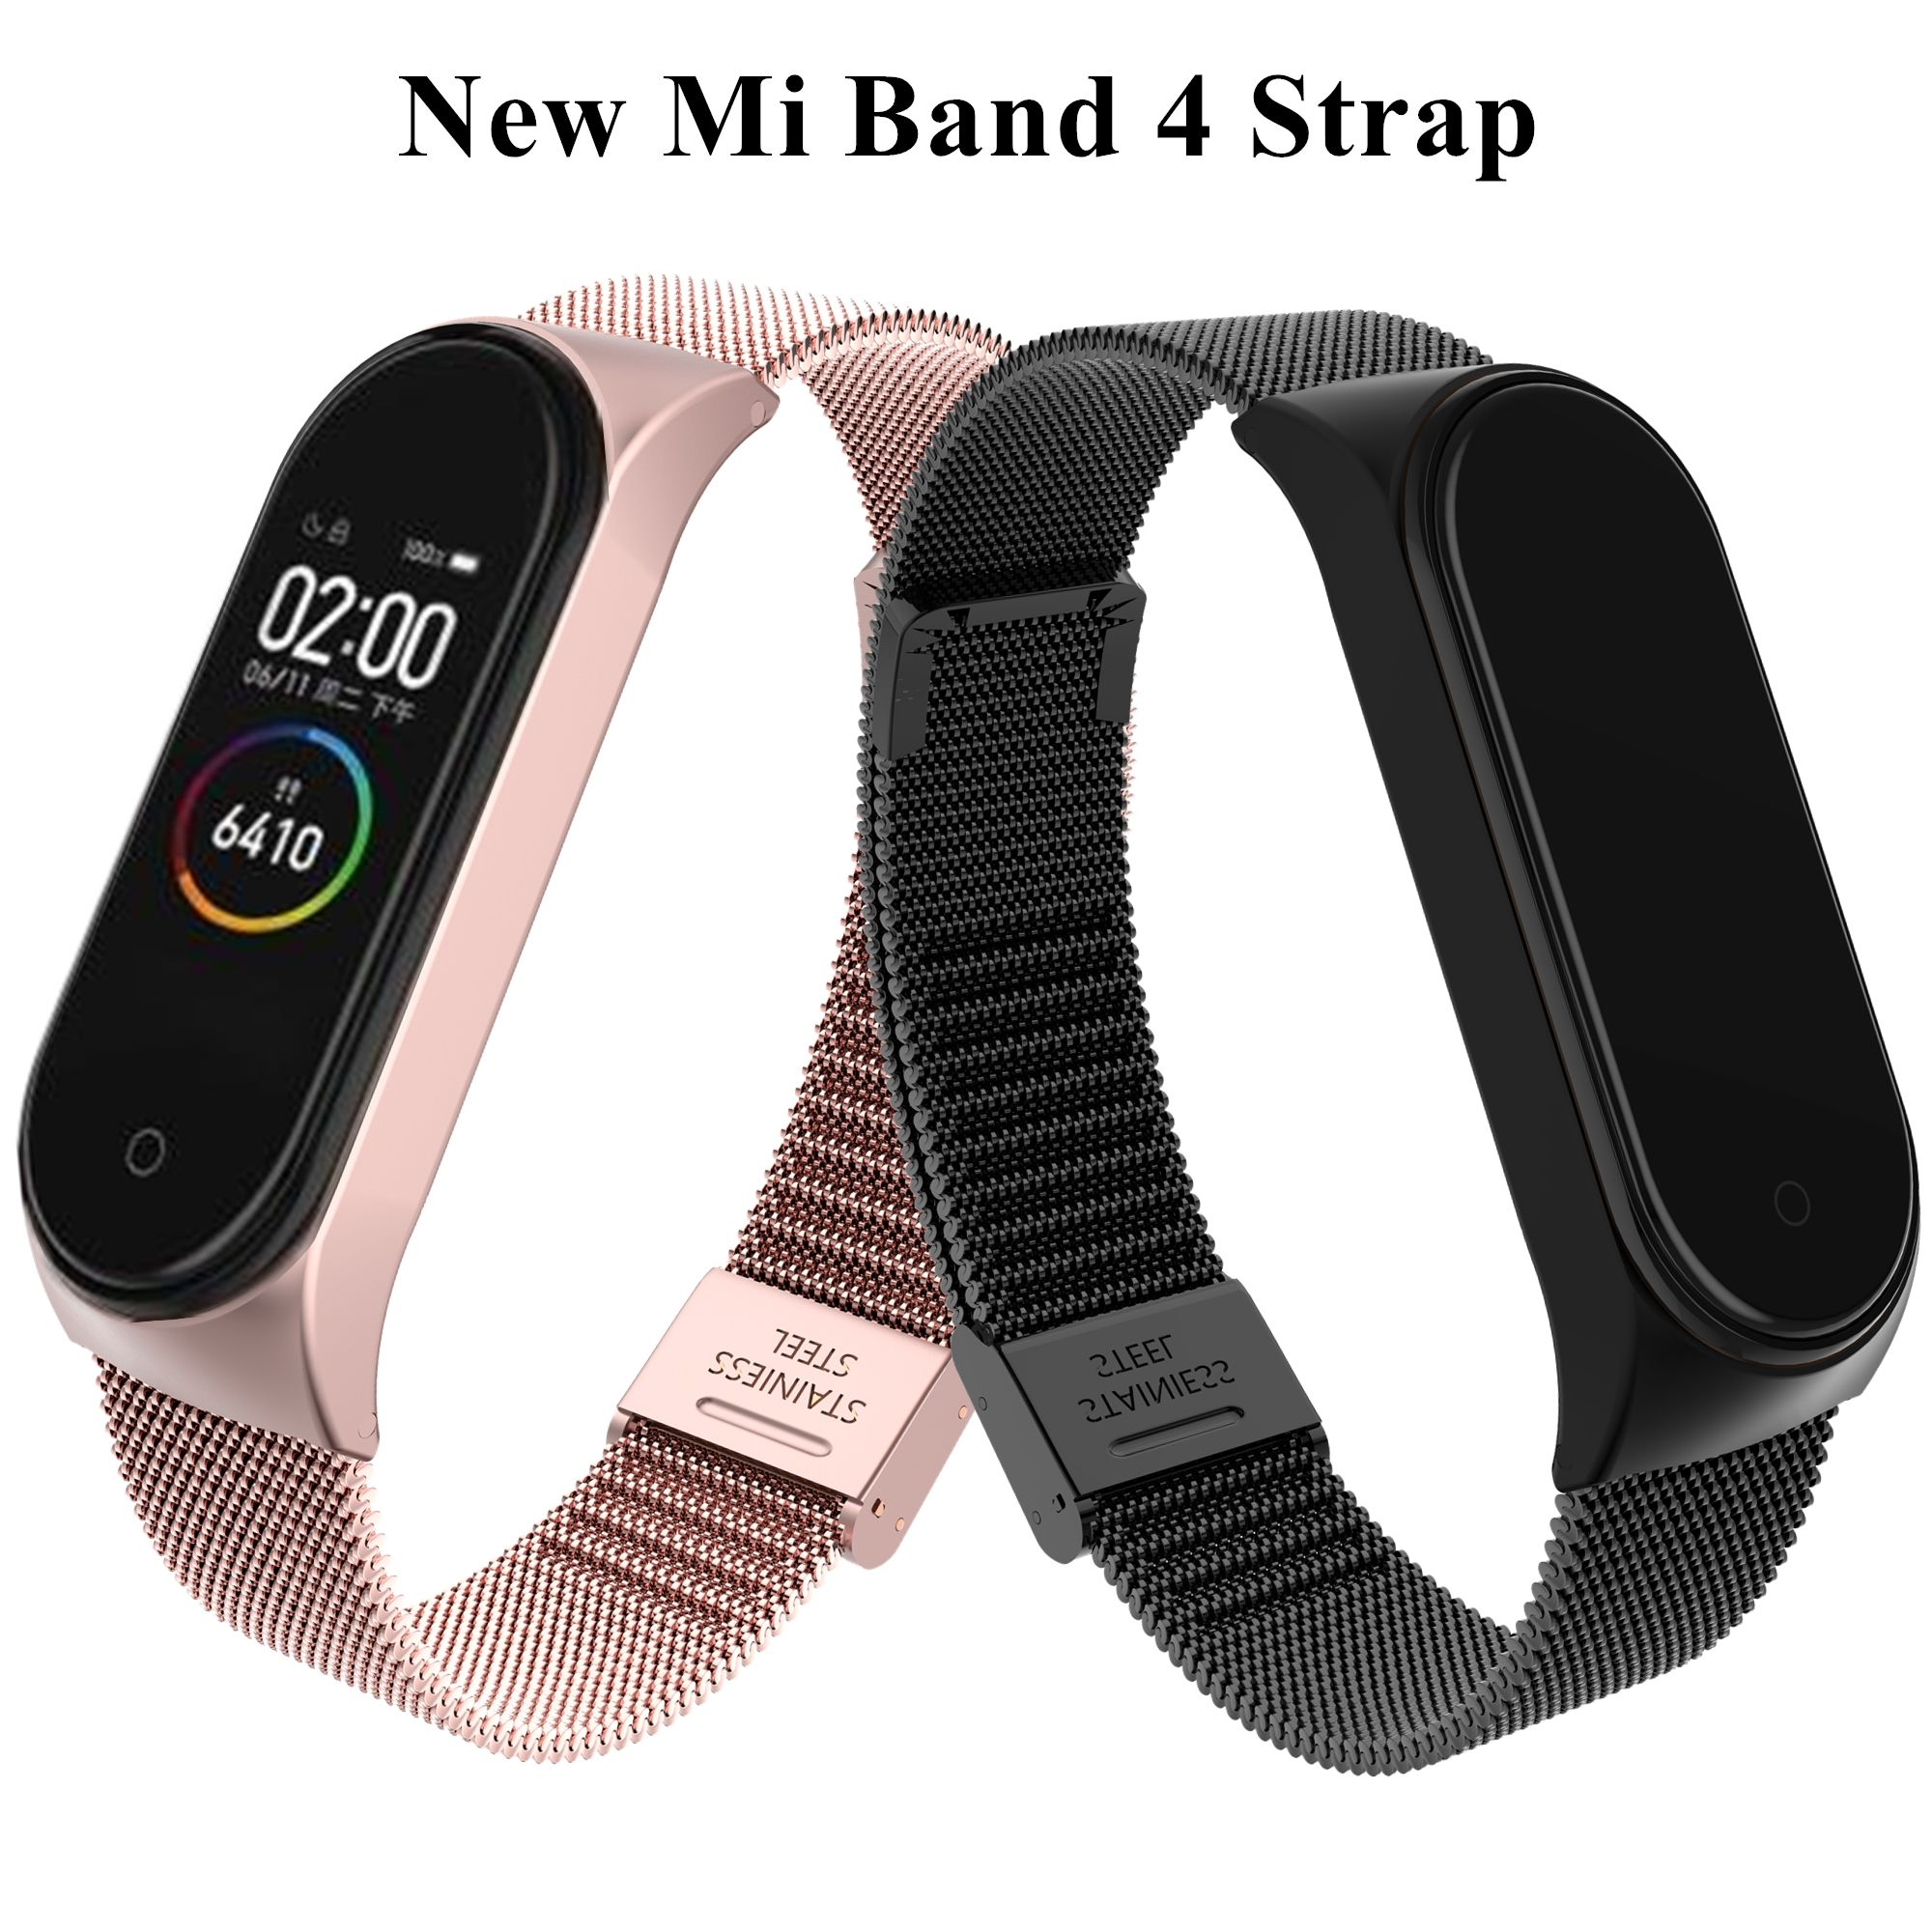 Cheap Accesorios Inteligentes Buy Directly From China Suppliers Pulsera Mi Band 4 Correa De Muñeca De M Pulseras De Acero Inoxidable Pulseras Baratas Pulseras